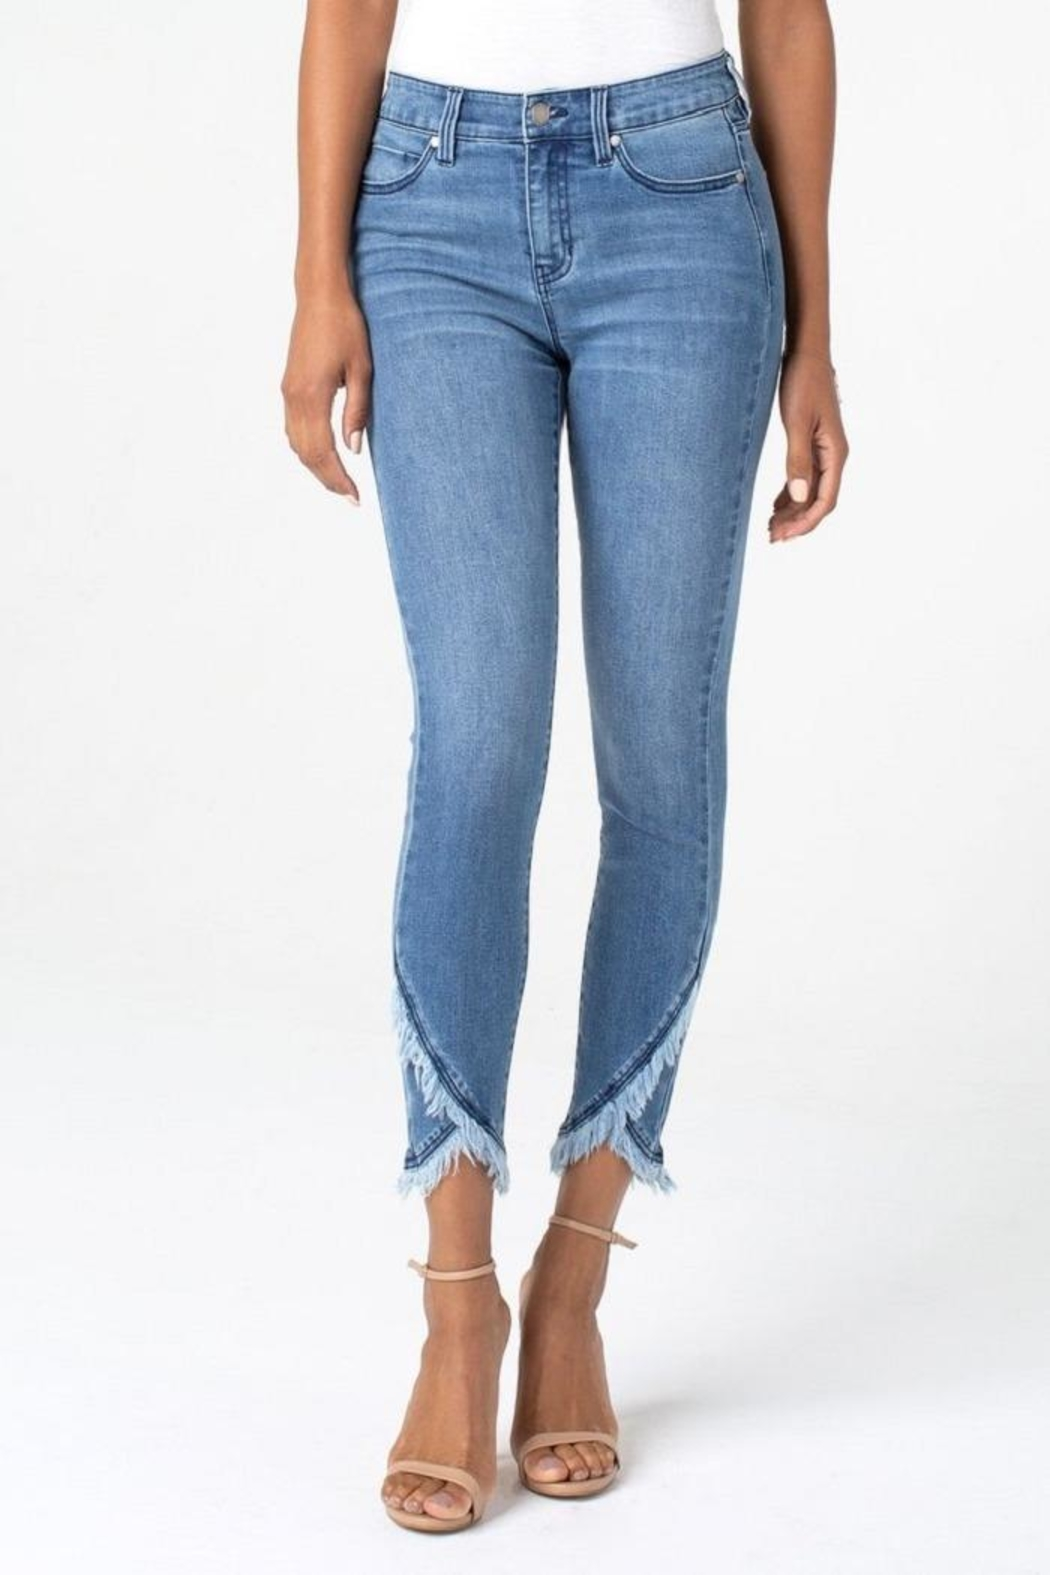 d0afcf19538e8 Liverpool Jean Company Frayed Crop Jeans from Cambria by New Moon ...